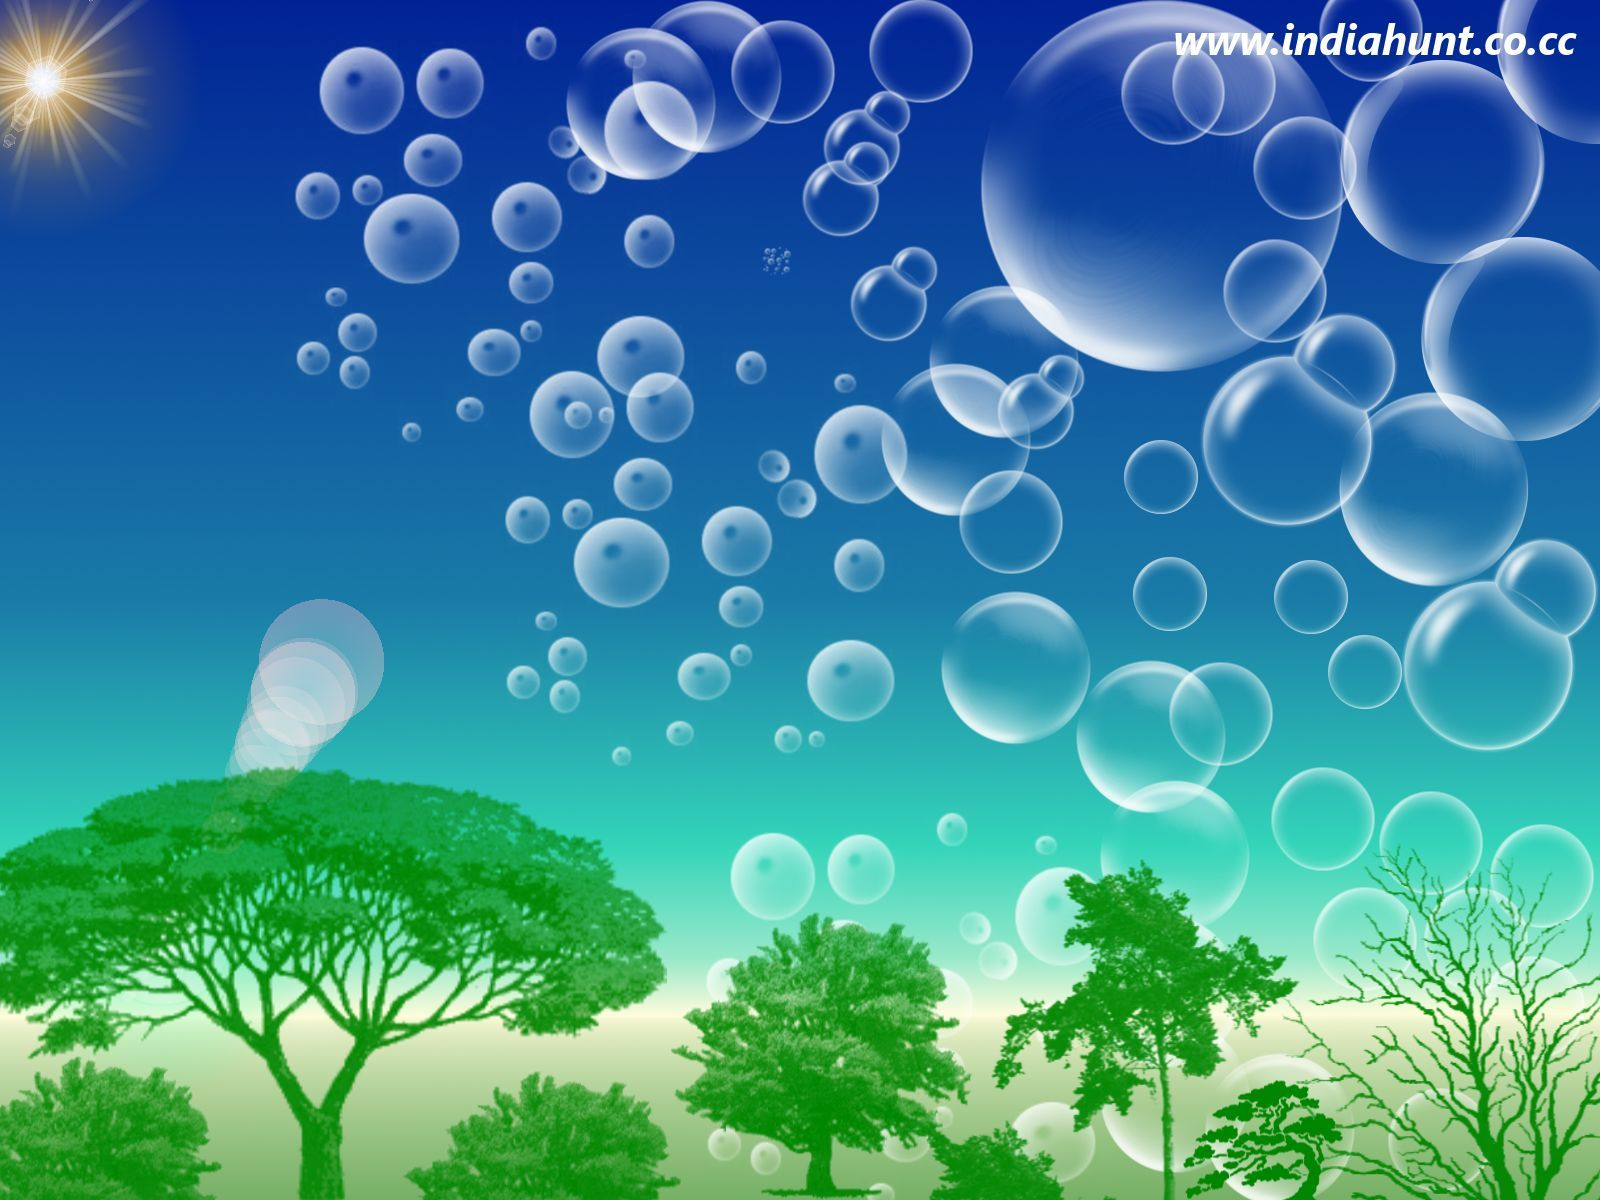 Wallpaper download live - Live Animated Wallpaper